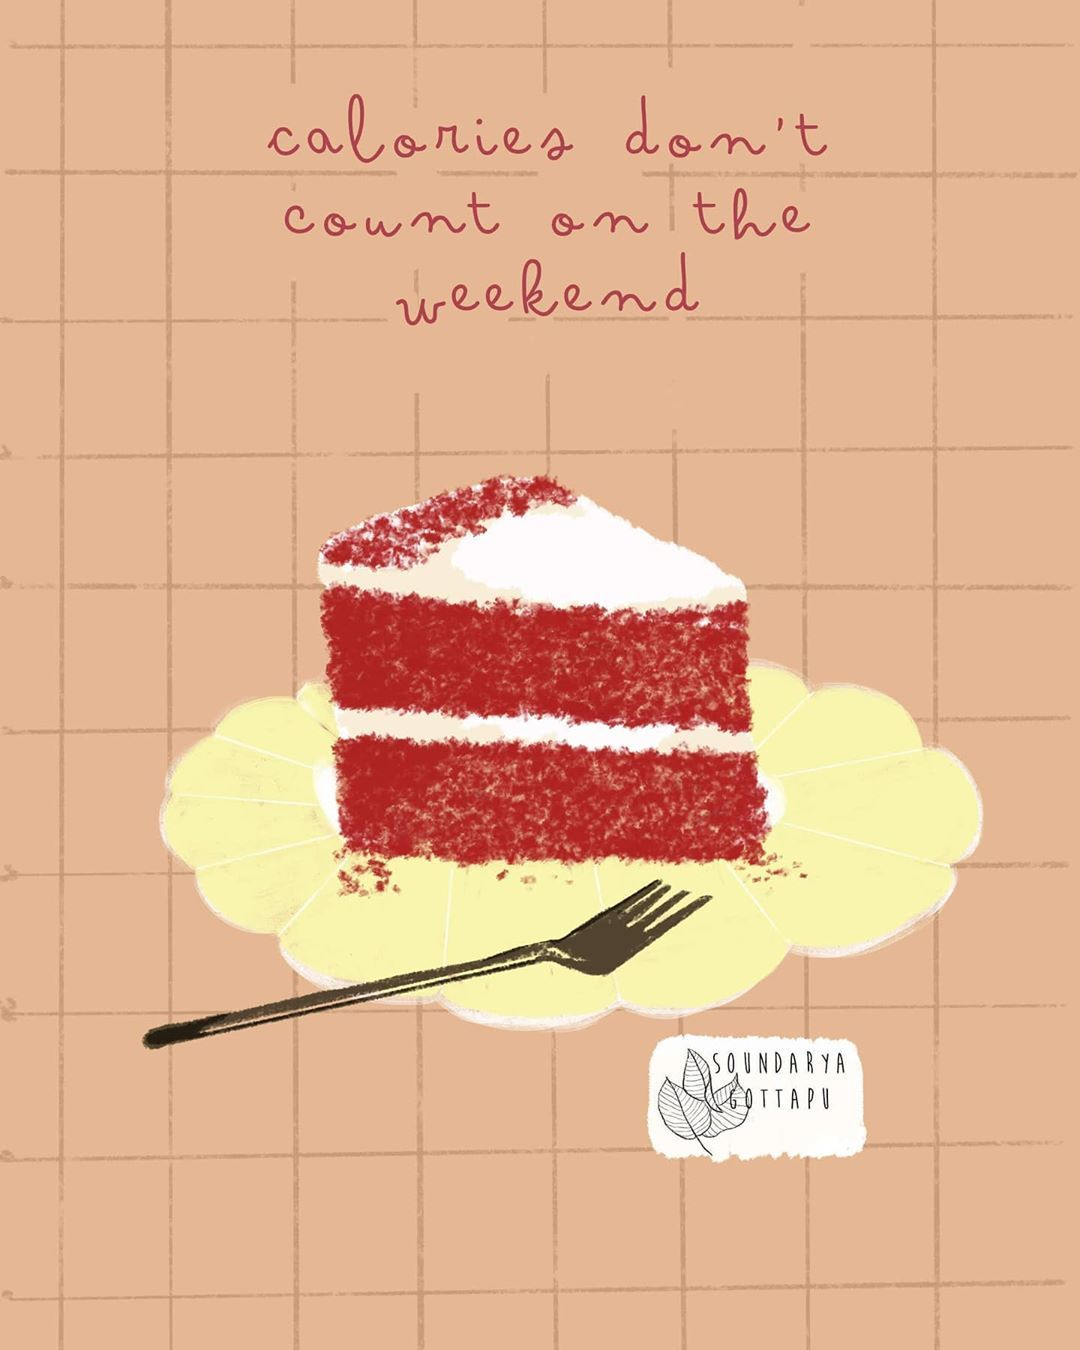 40 Likes 5 Comments Soundarya Gottapu Soundaryagottapu On Instagram I Had To Double Check That It S Friday Today In 2020 Dessert Illustration Desserts Cake